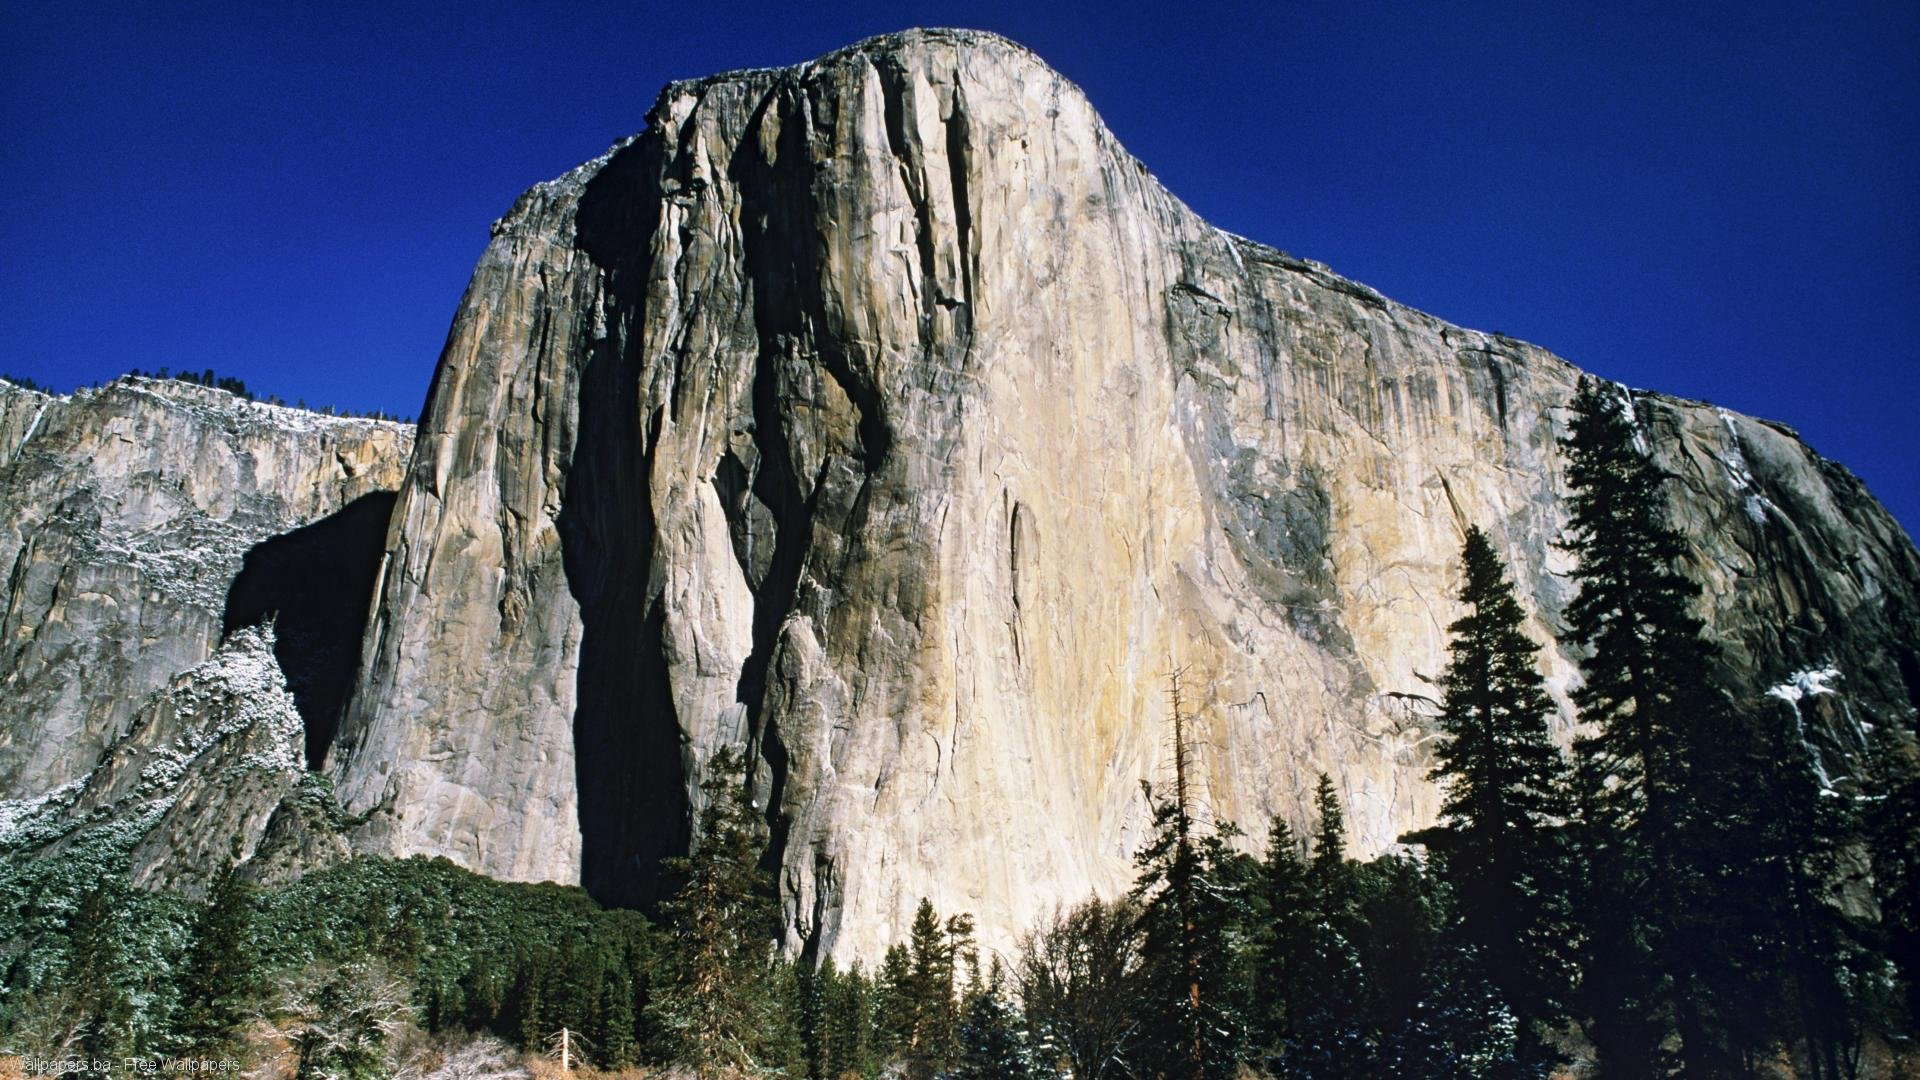 wallpaper yosemite capitan wallpapers images wmwallpapers fenwayjpg 1920x1080